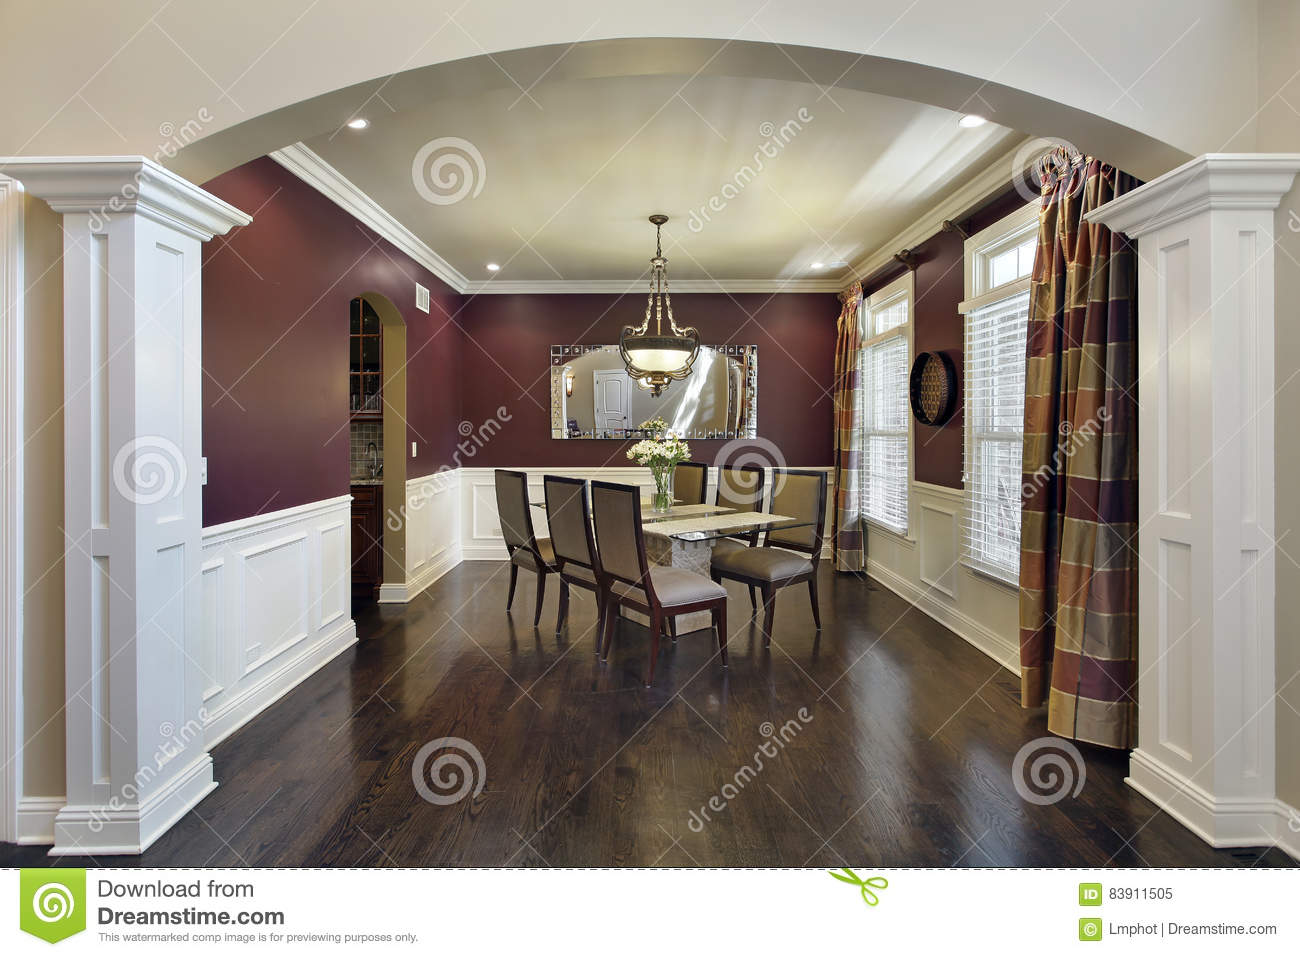 dining room with maroon walls stock photo - image: 83911505